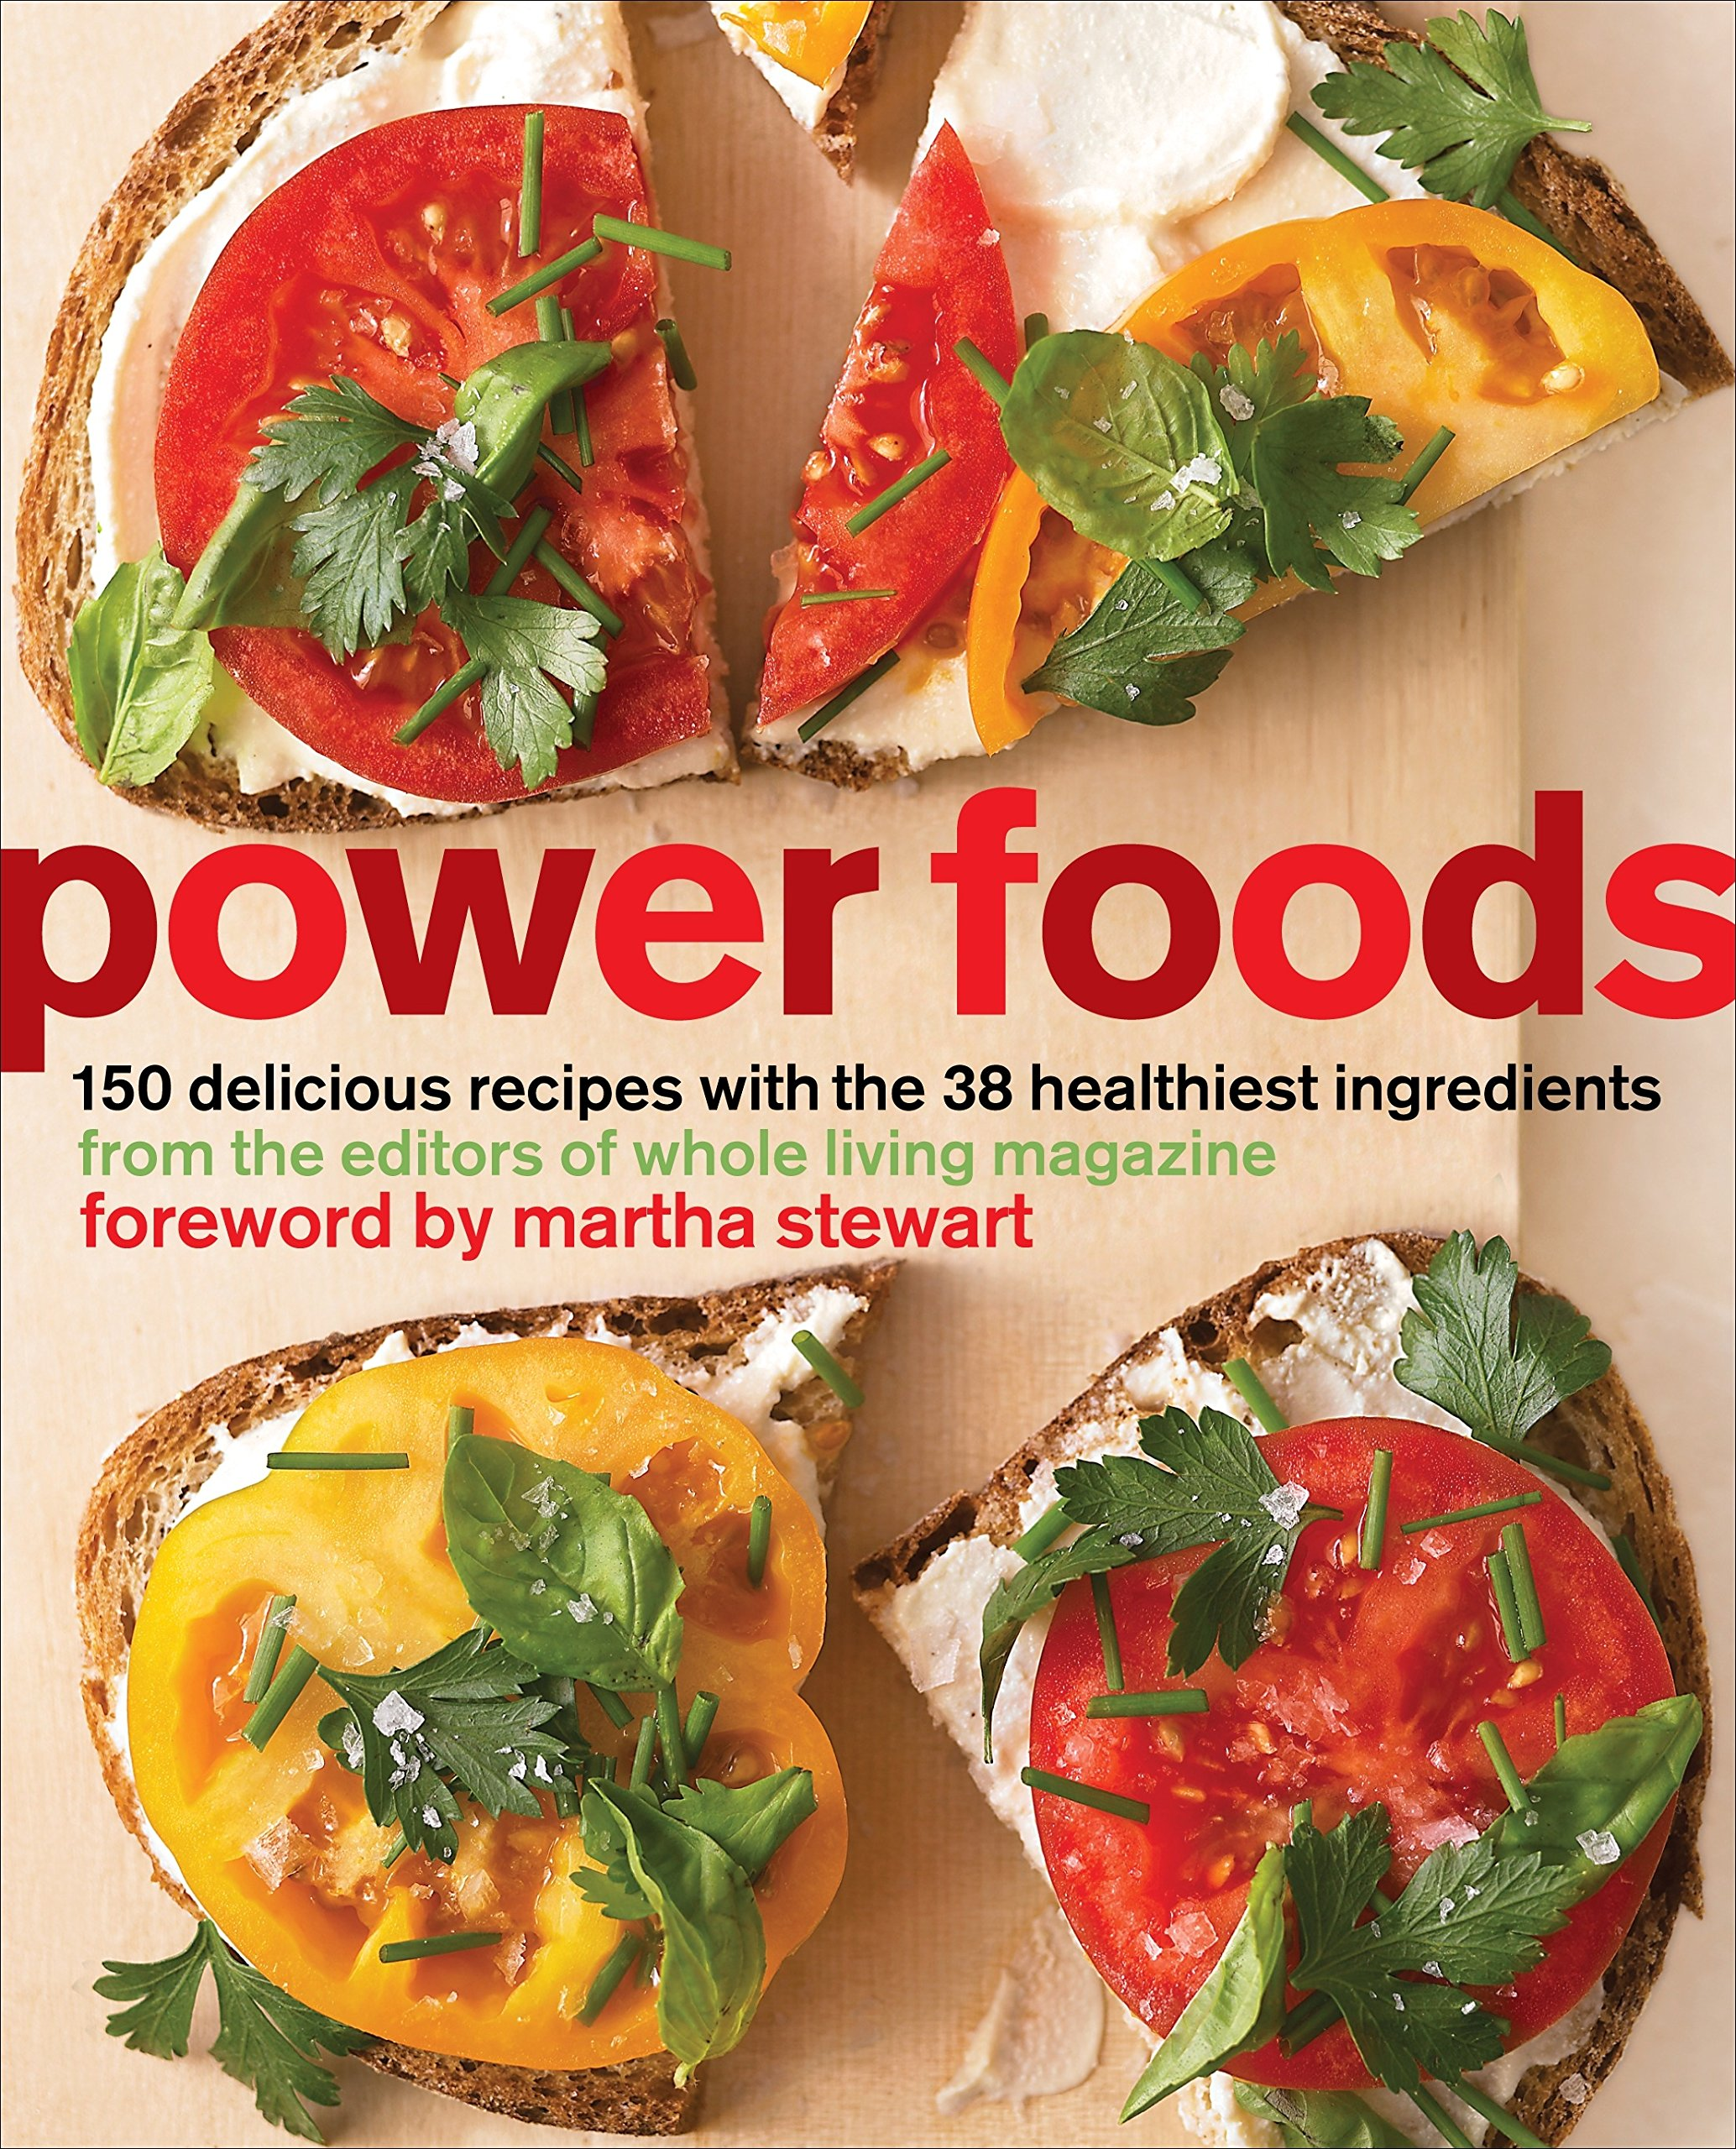 Power foods 150 delicious recipes with the 38 healthiest power foods 150 delicious recipes with the 38 healthiest ingredients the editors of whole living magazine 9780307465320 amazon books forumfinder Gallery